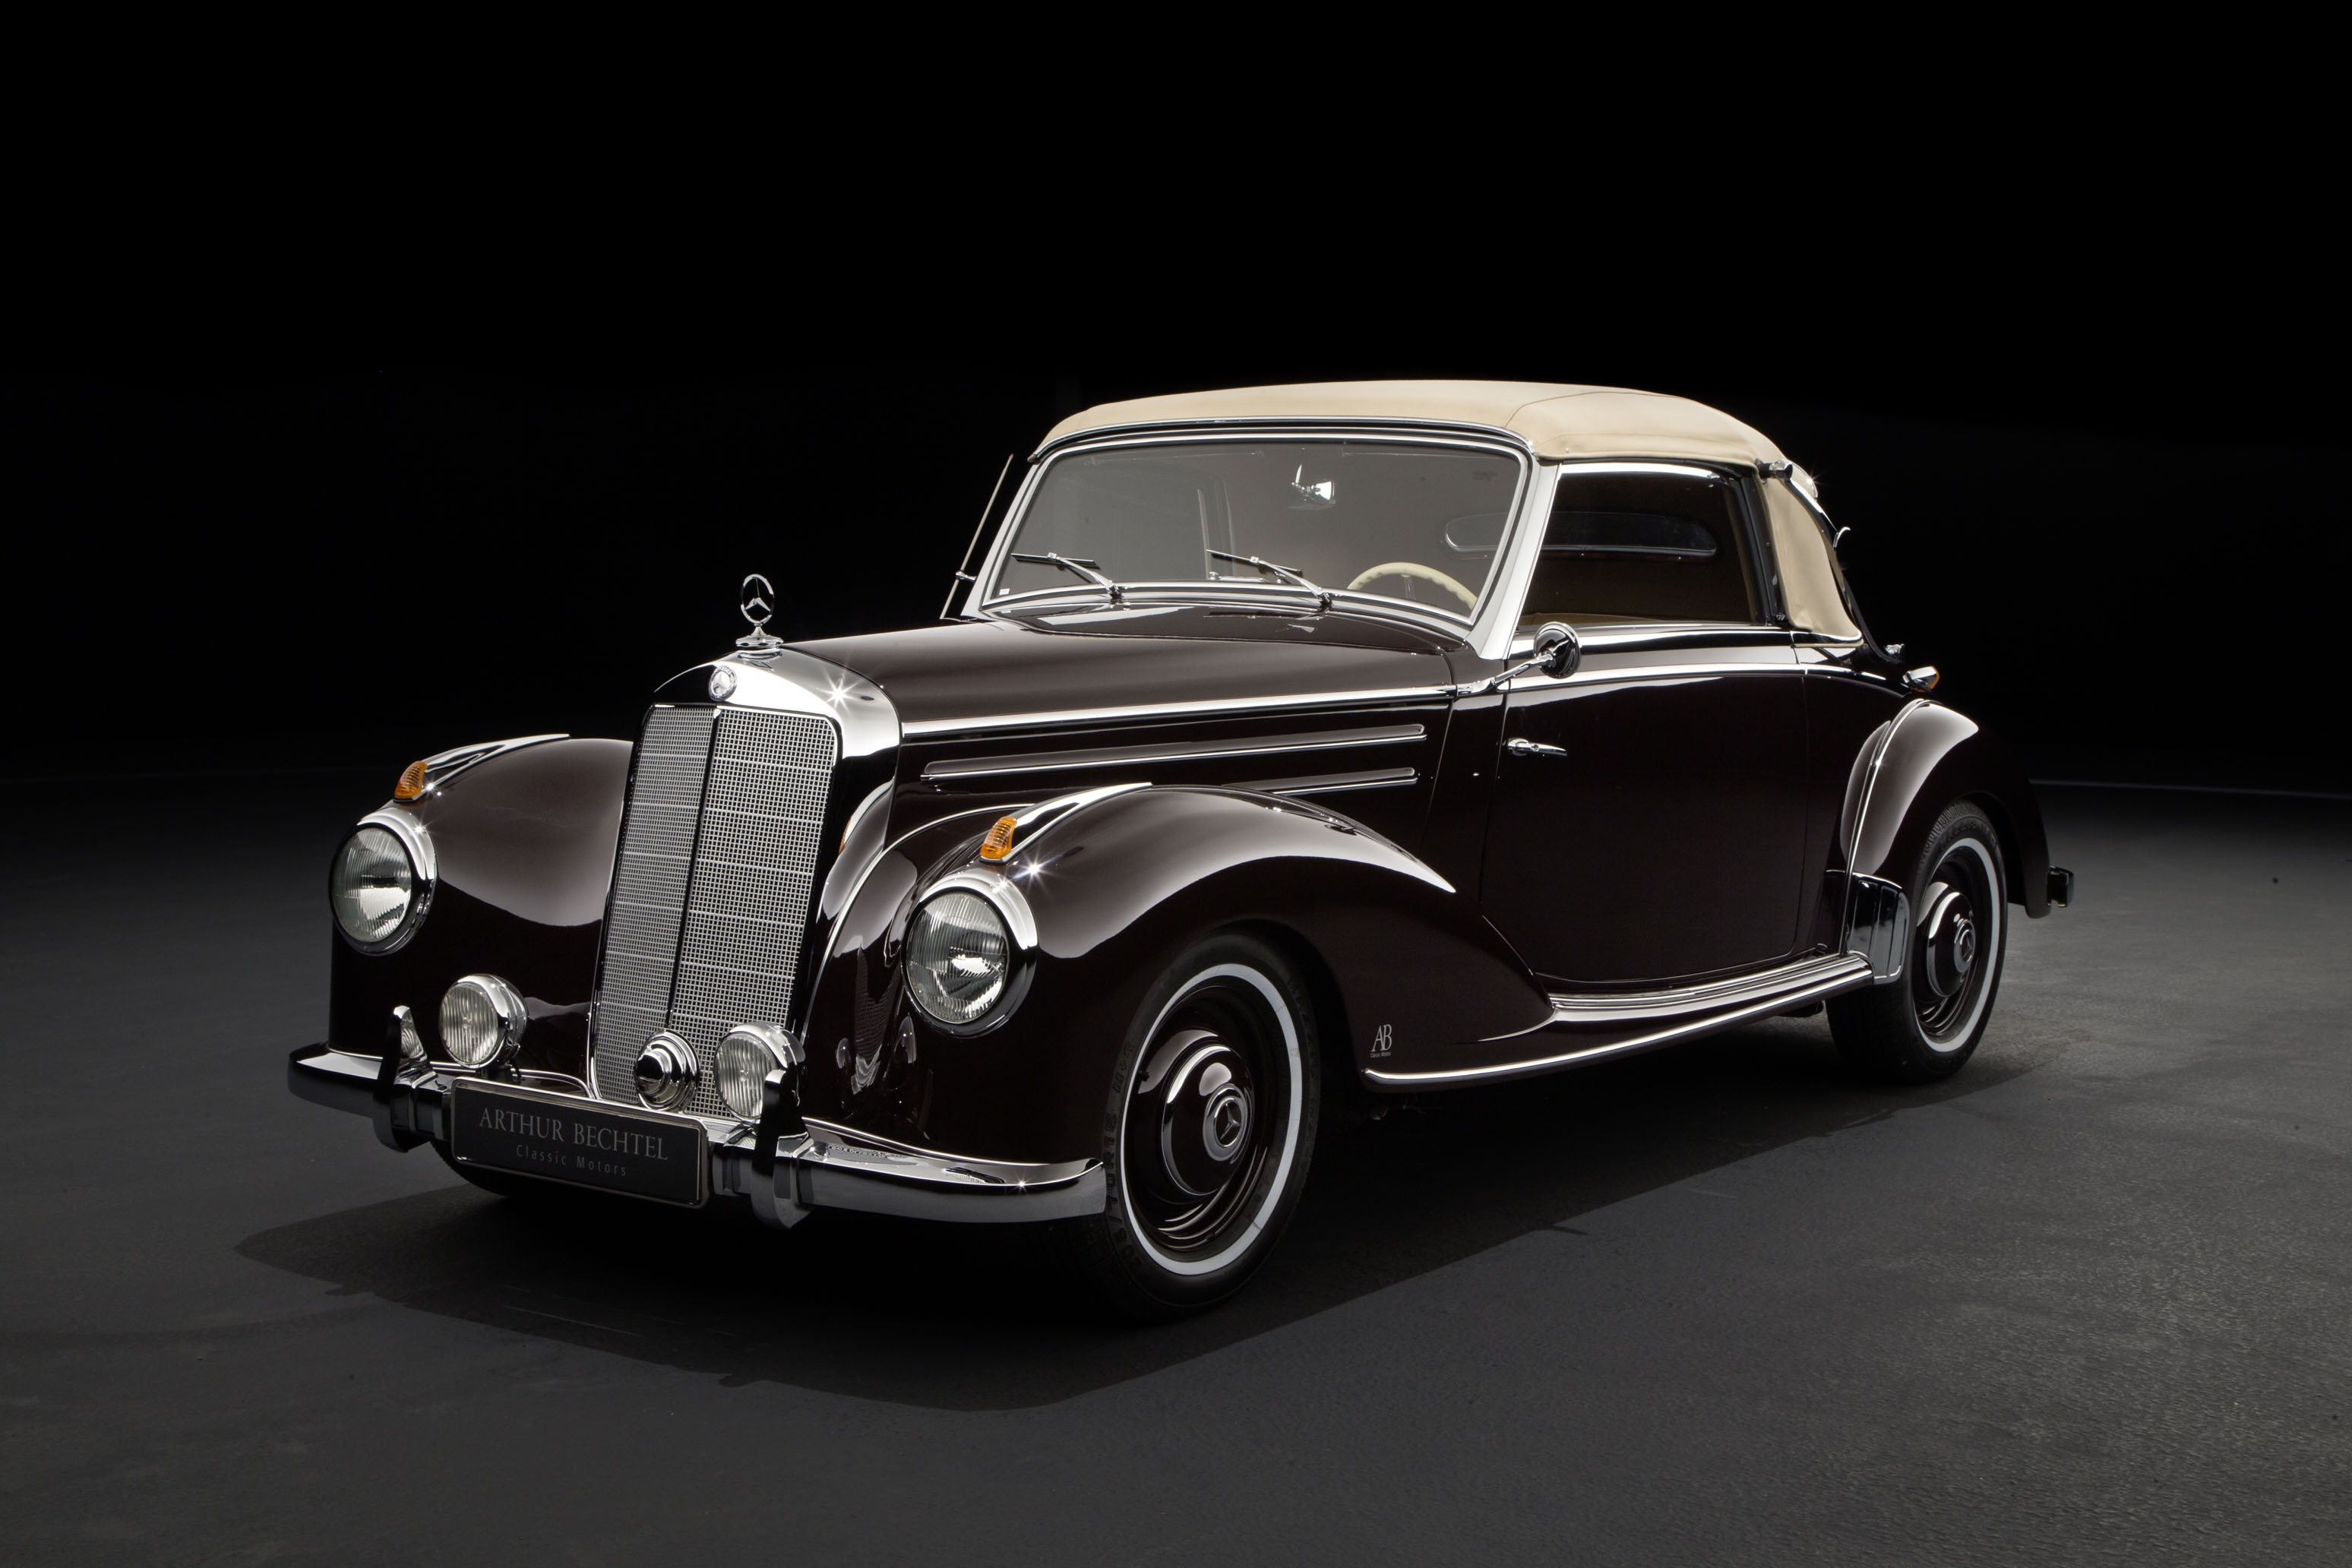 1952 mercedes benz 220 cabriolet a classic driver market for 1953 mercedes benz 220 sedan for sale